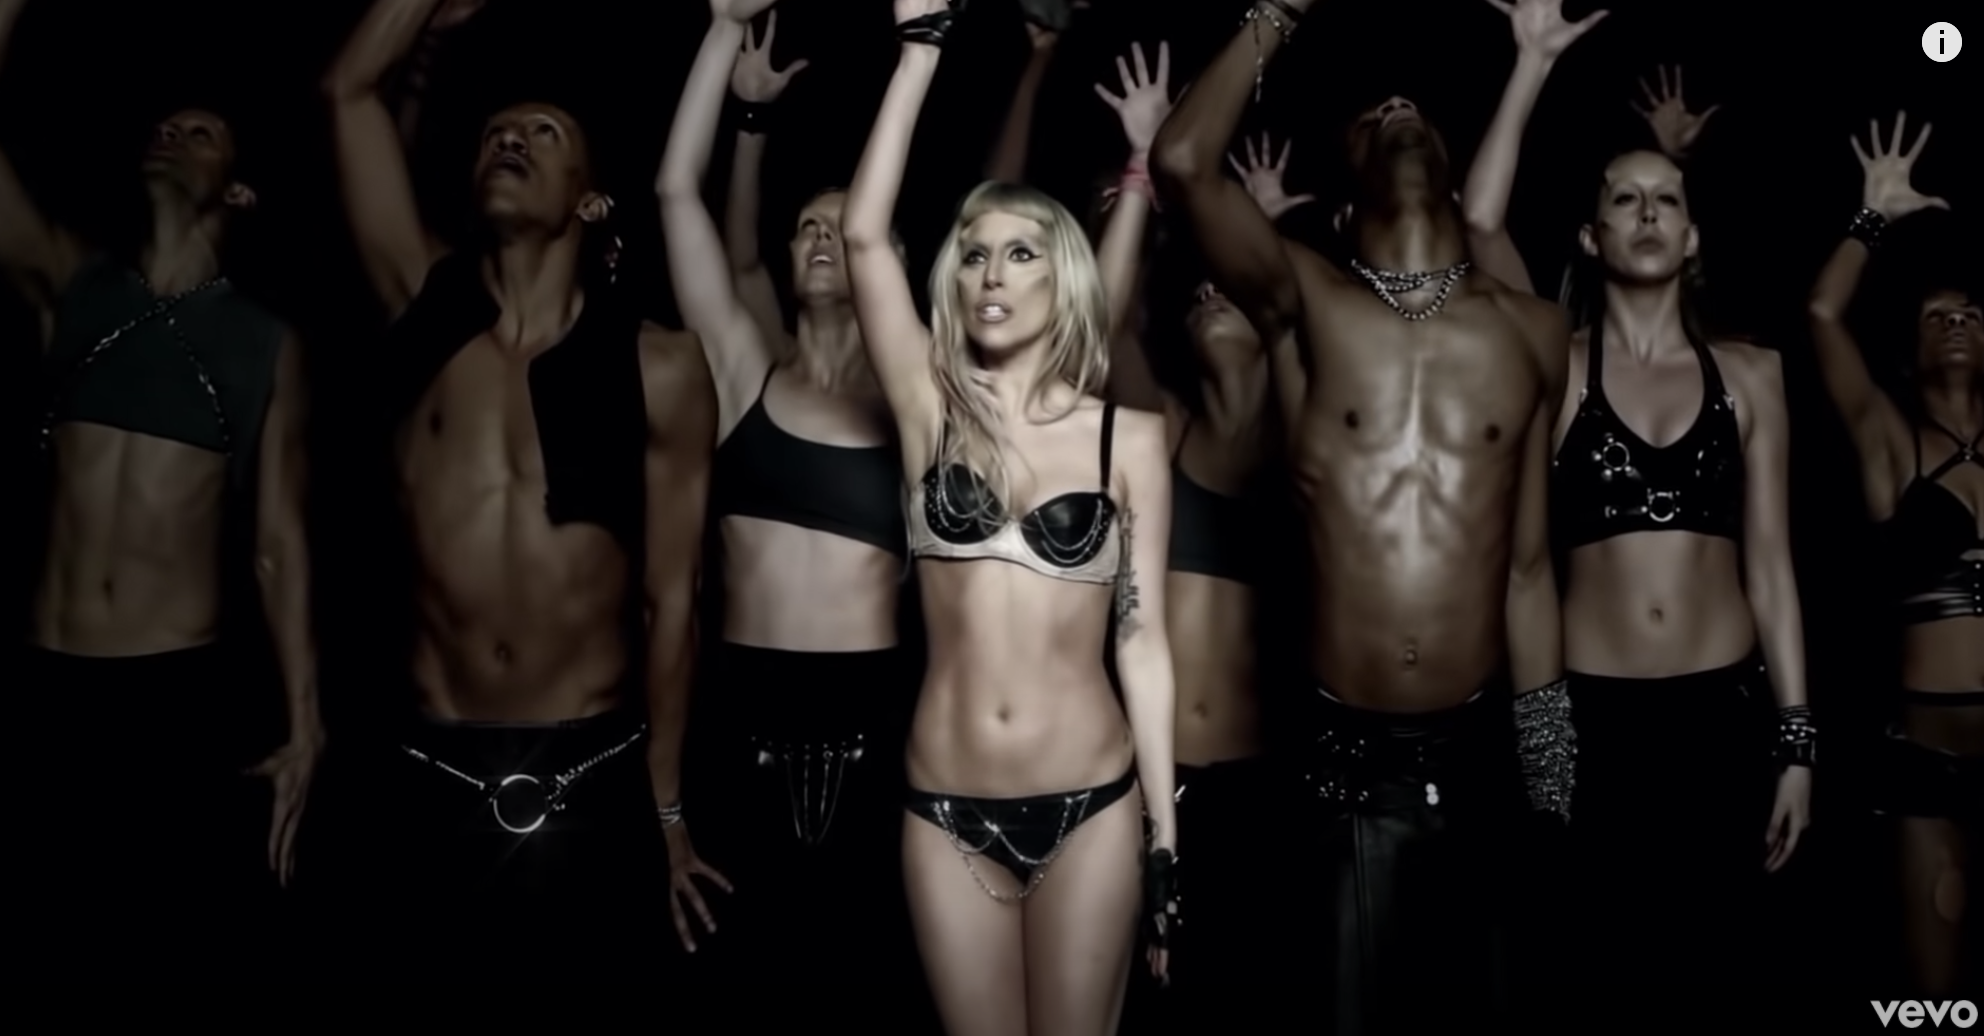 Gaga holding her hand up with her dancers in the Born This Way music video